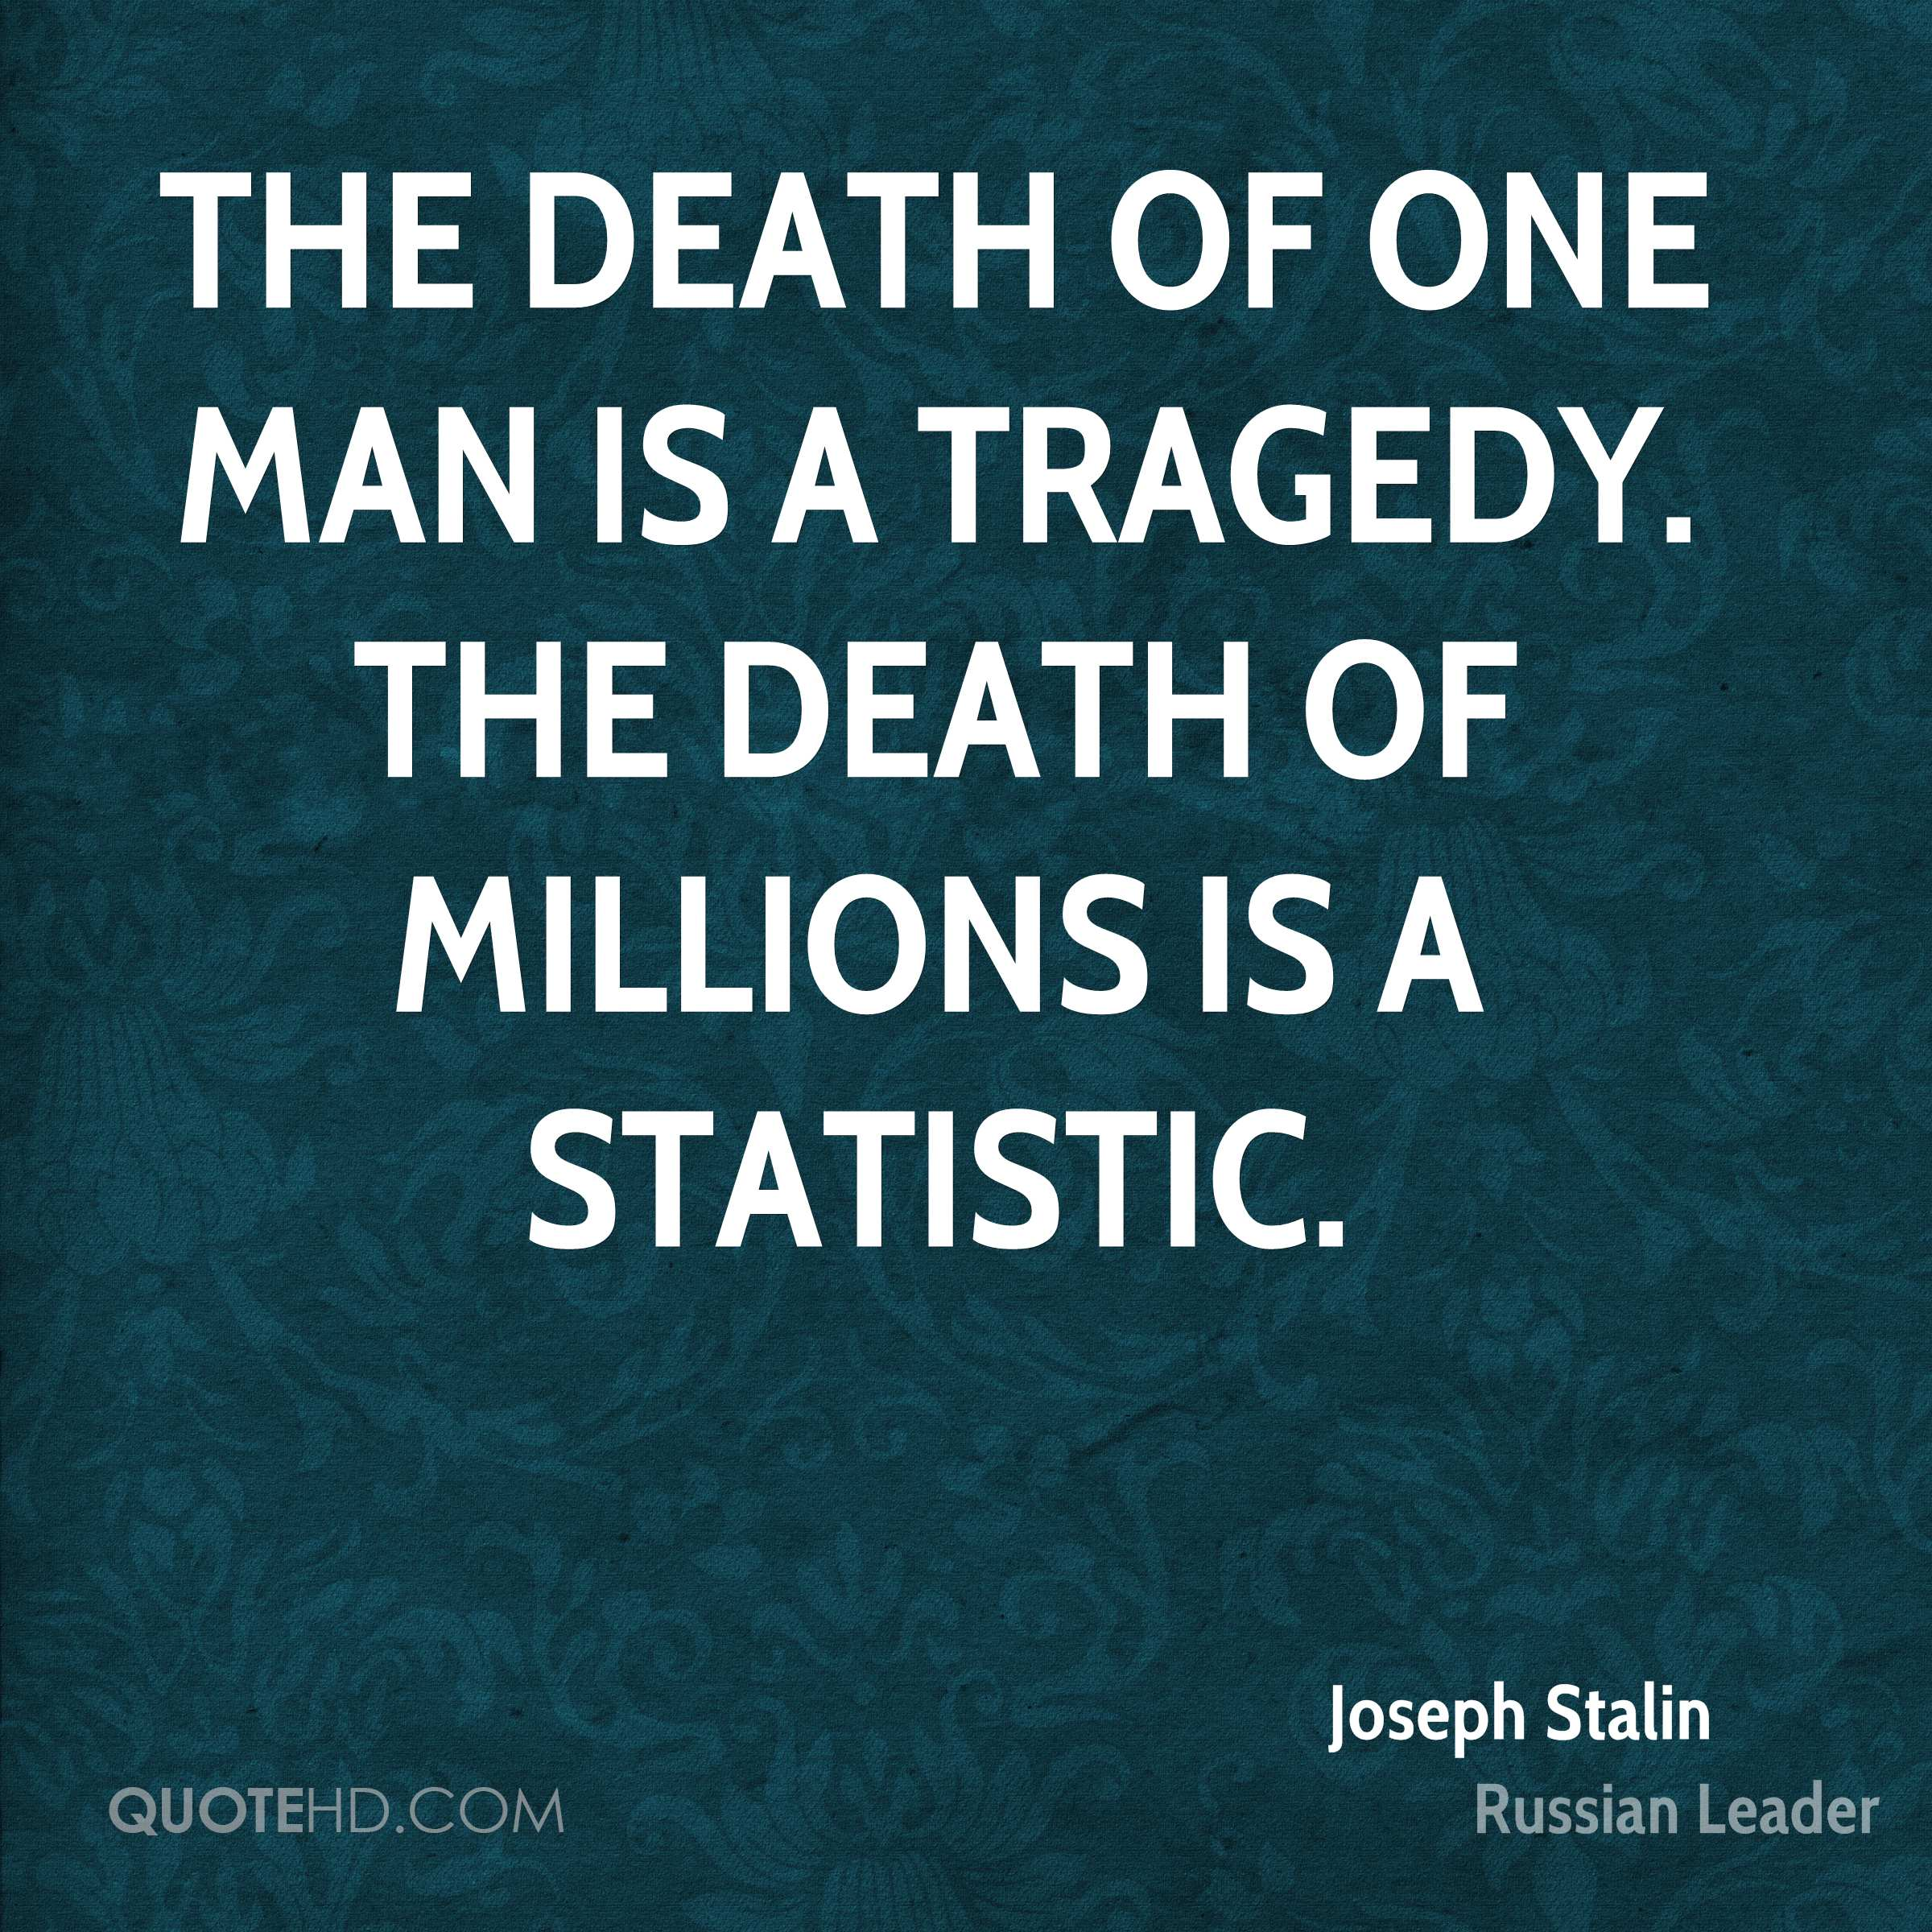 The death of one man is a tragedy. The death of millions is a statistic.